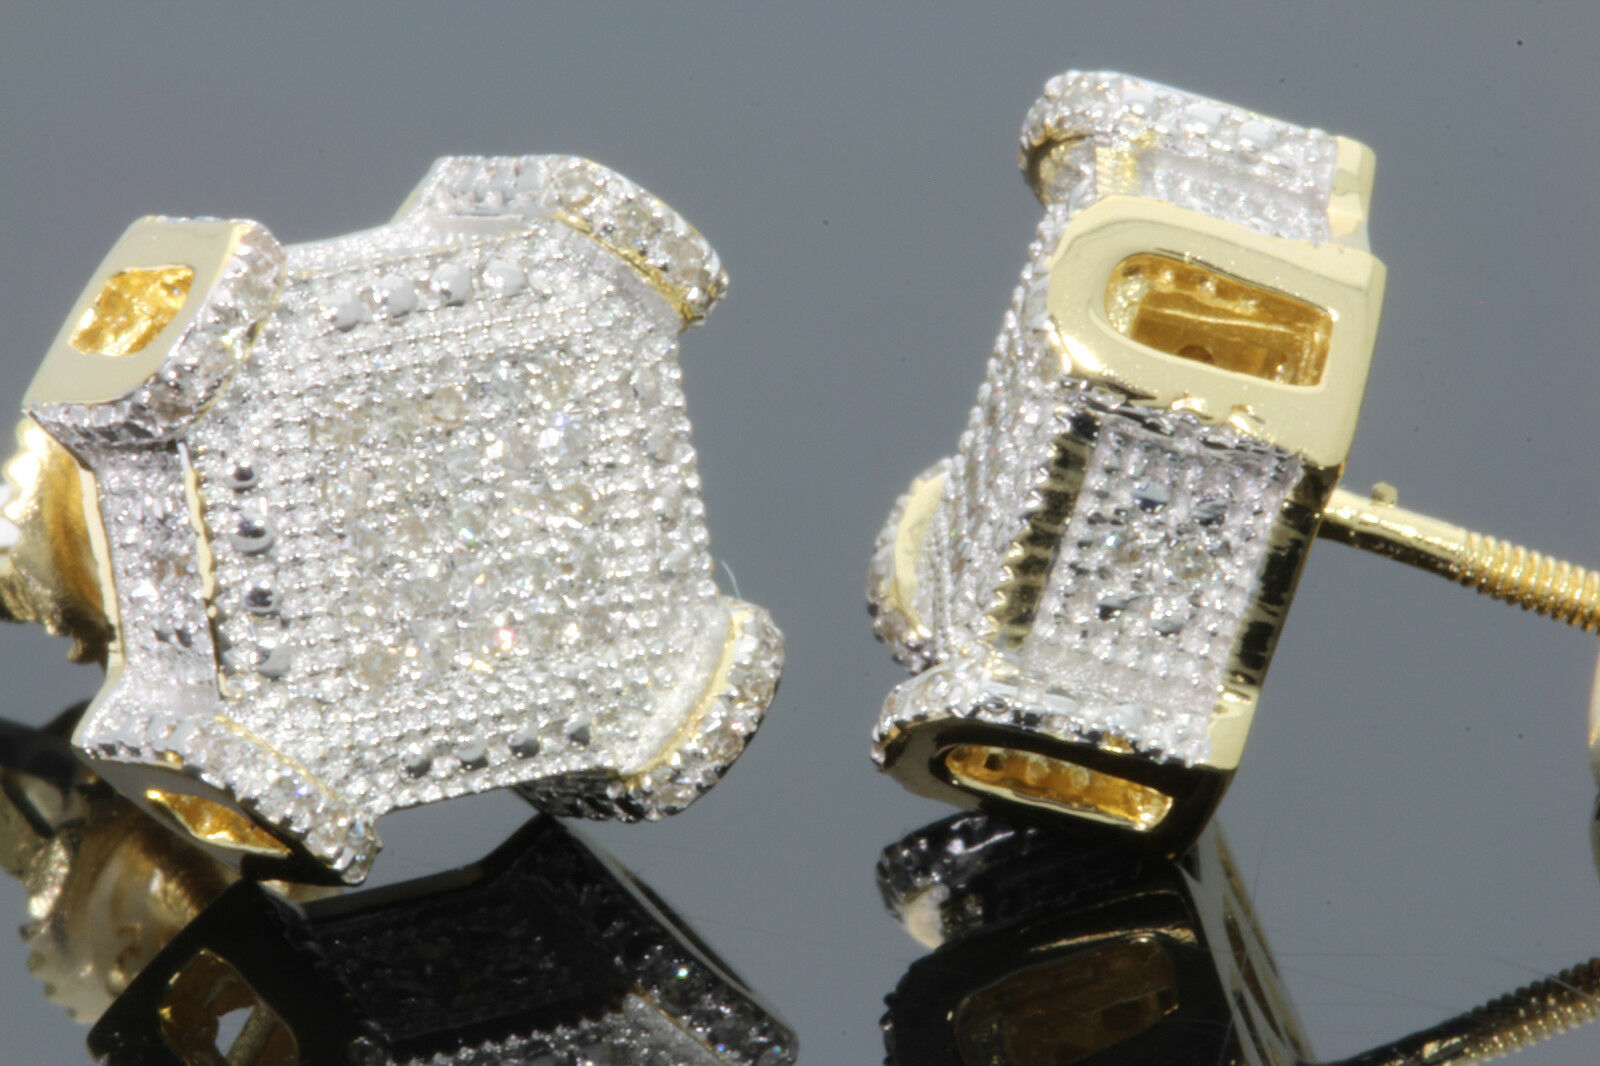 .29 CT STERLING SILVER GOLD FINISH MEN WOMEN 10 mm REAL DIAMONDS EARRINGS STUDS